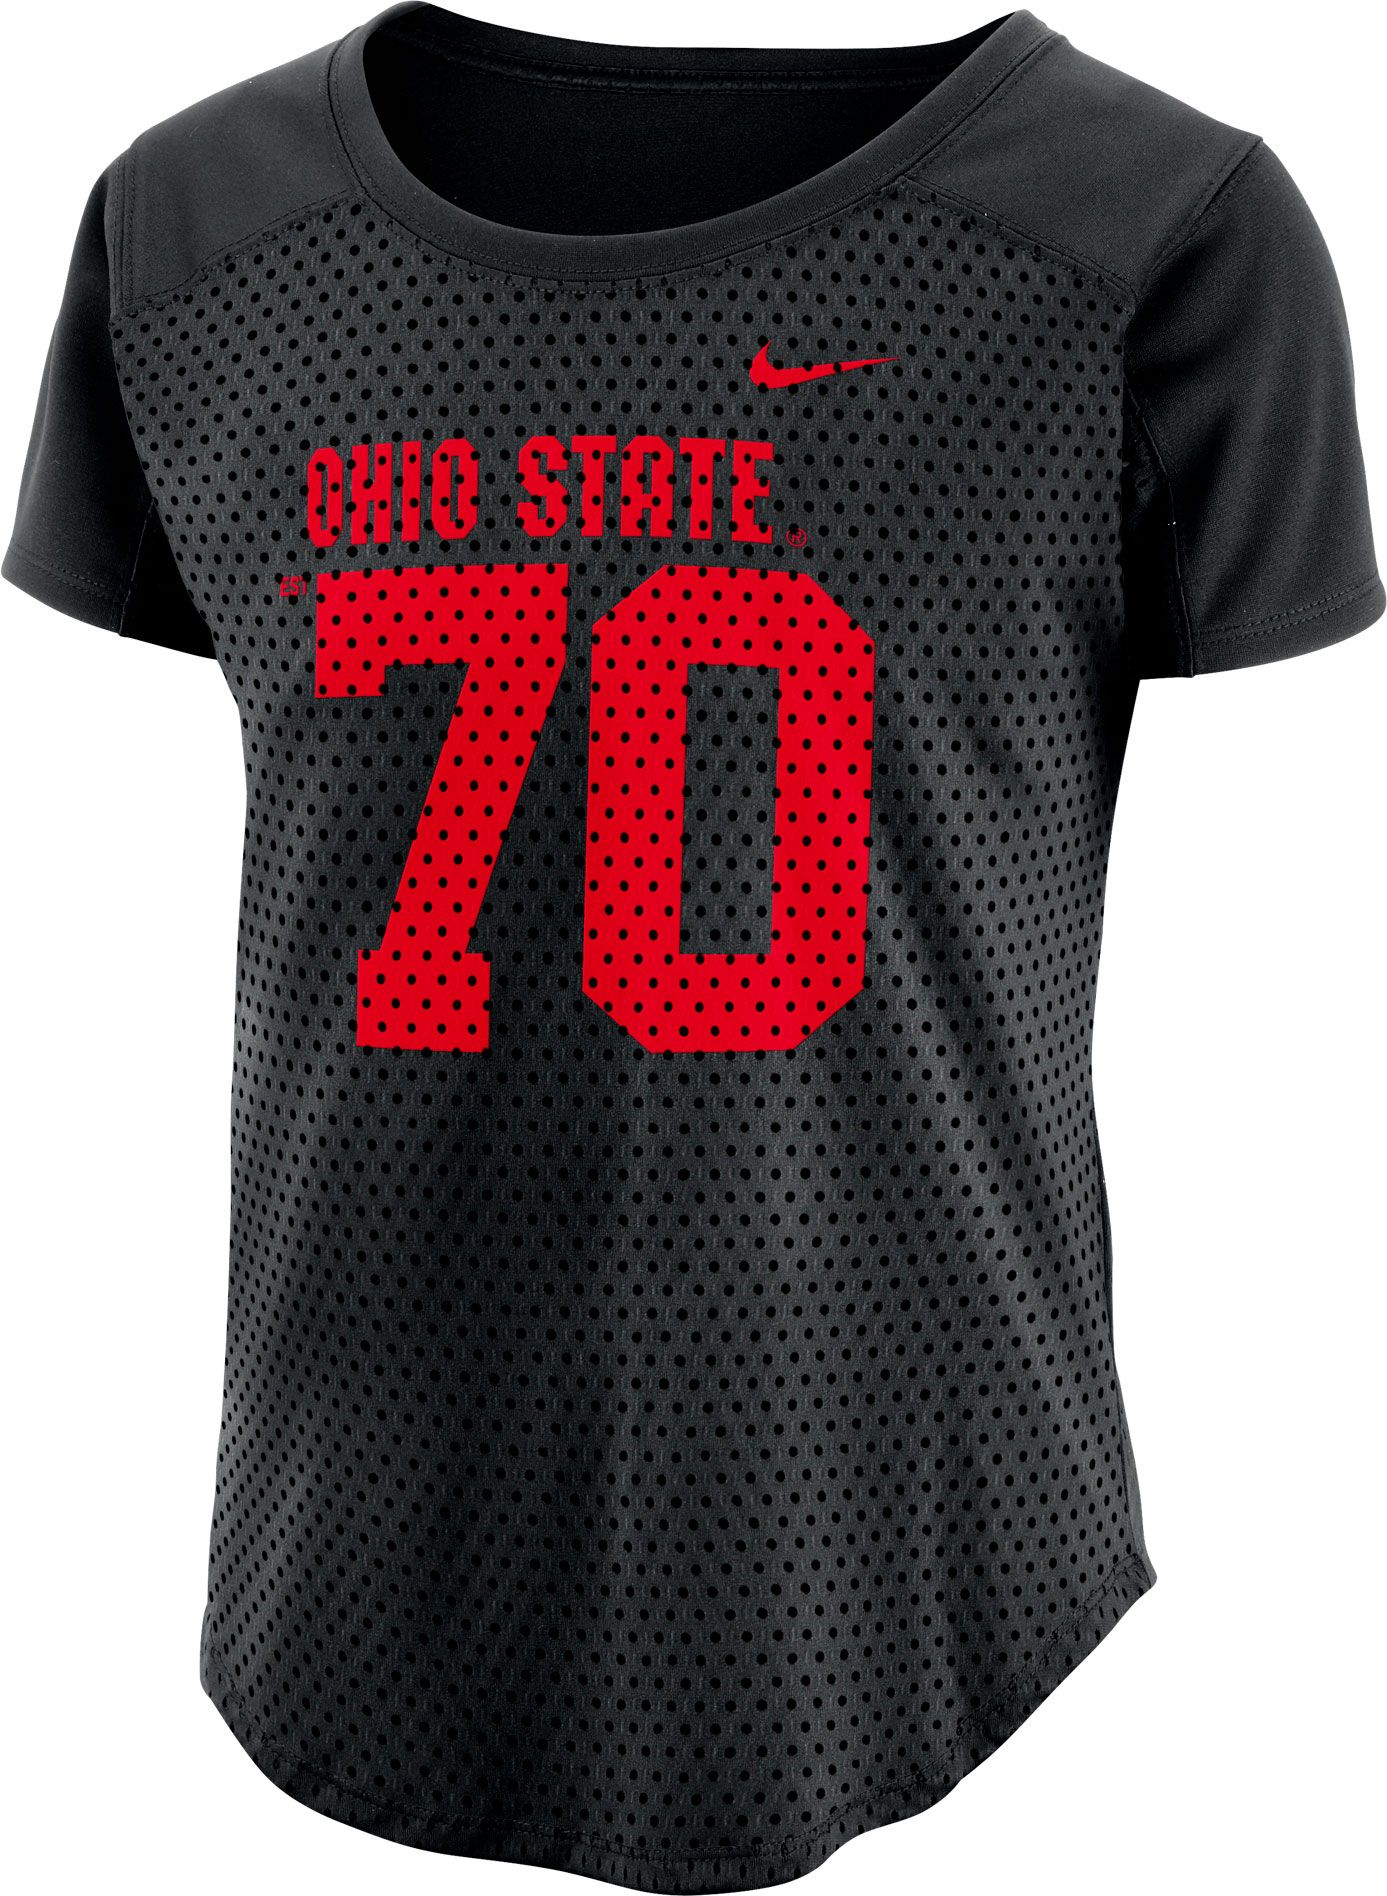 ... number stitched ncaa limited football jersey bcbe0 1f8ad  usa nike womens  ohio state buckeyes modern fan black jersey top 6124e 257b1 0190031a5